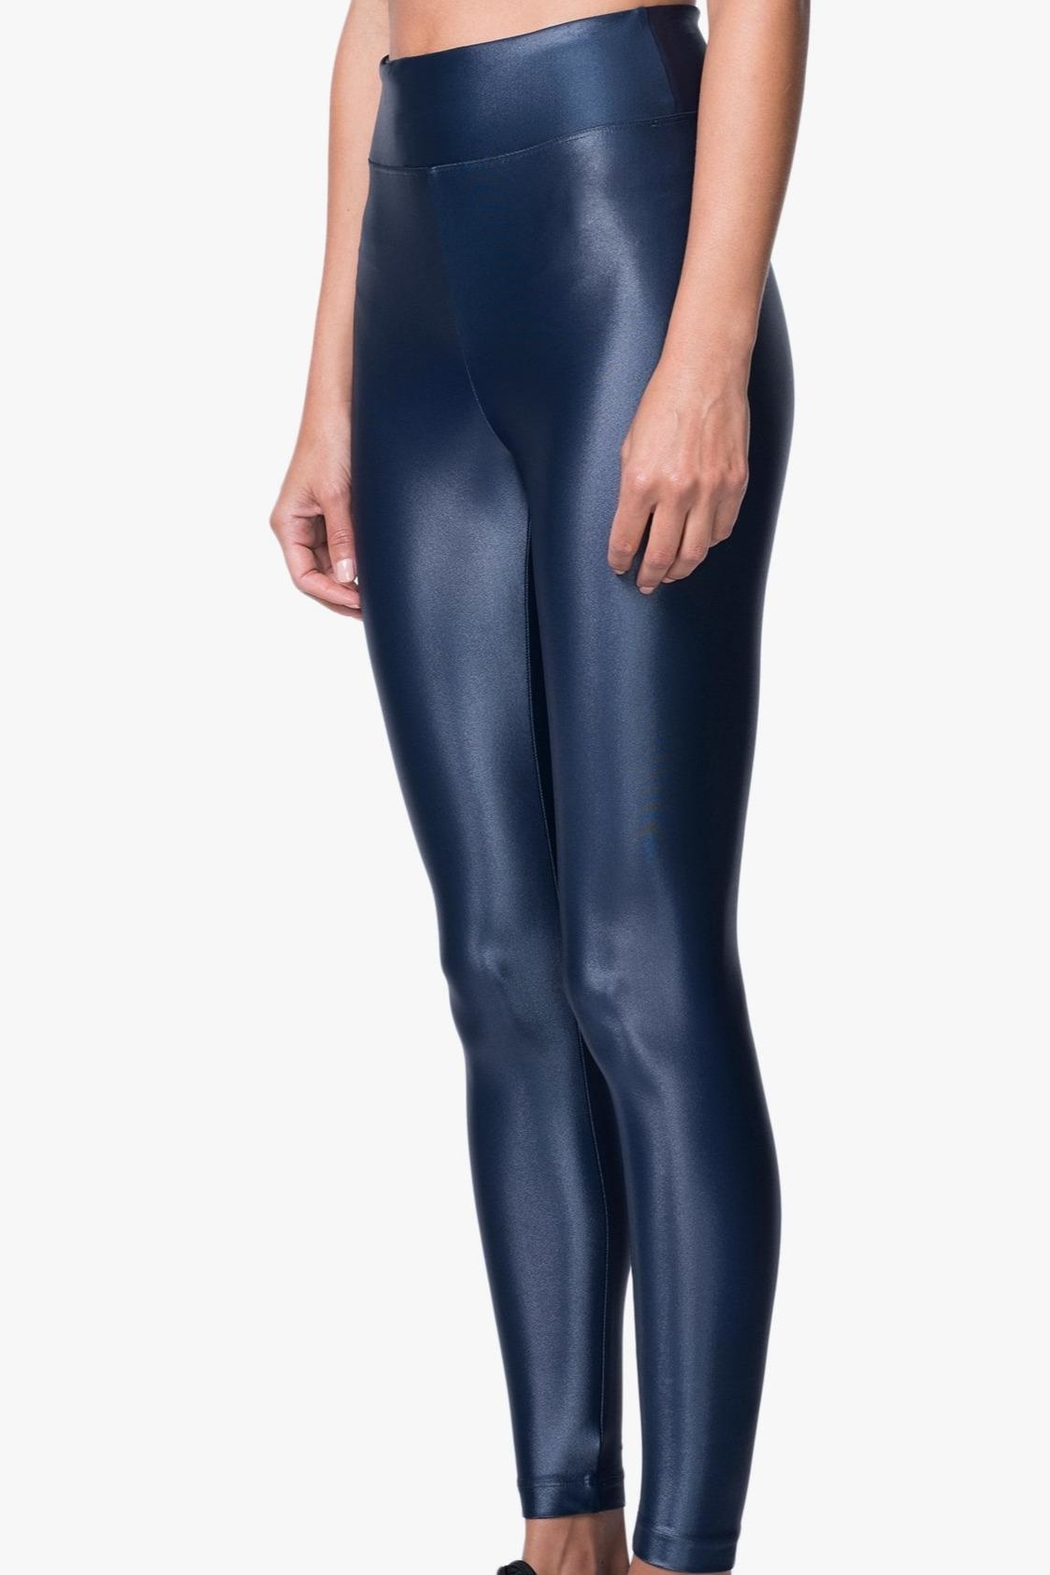 KORAL Lustrous High-Rise Leggings - Side Cropped Image